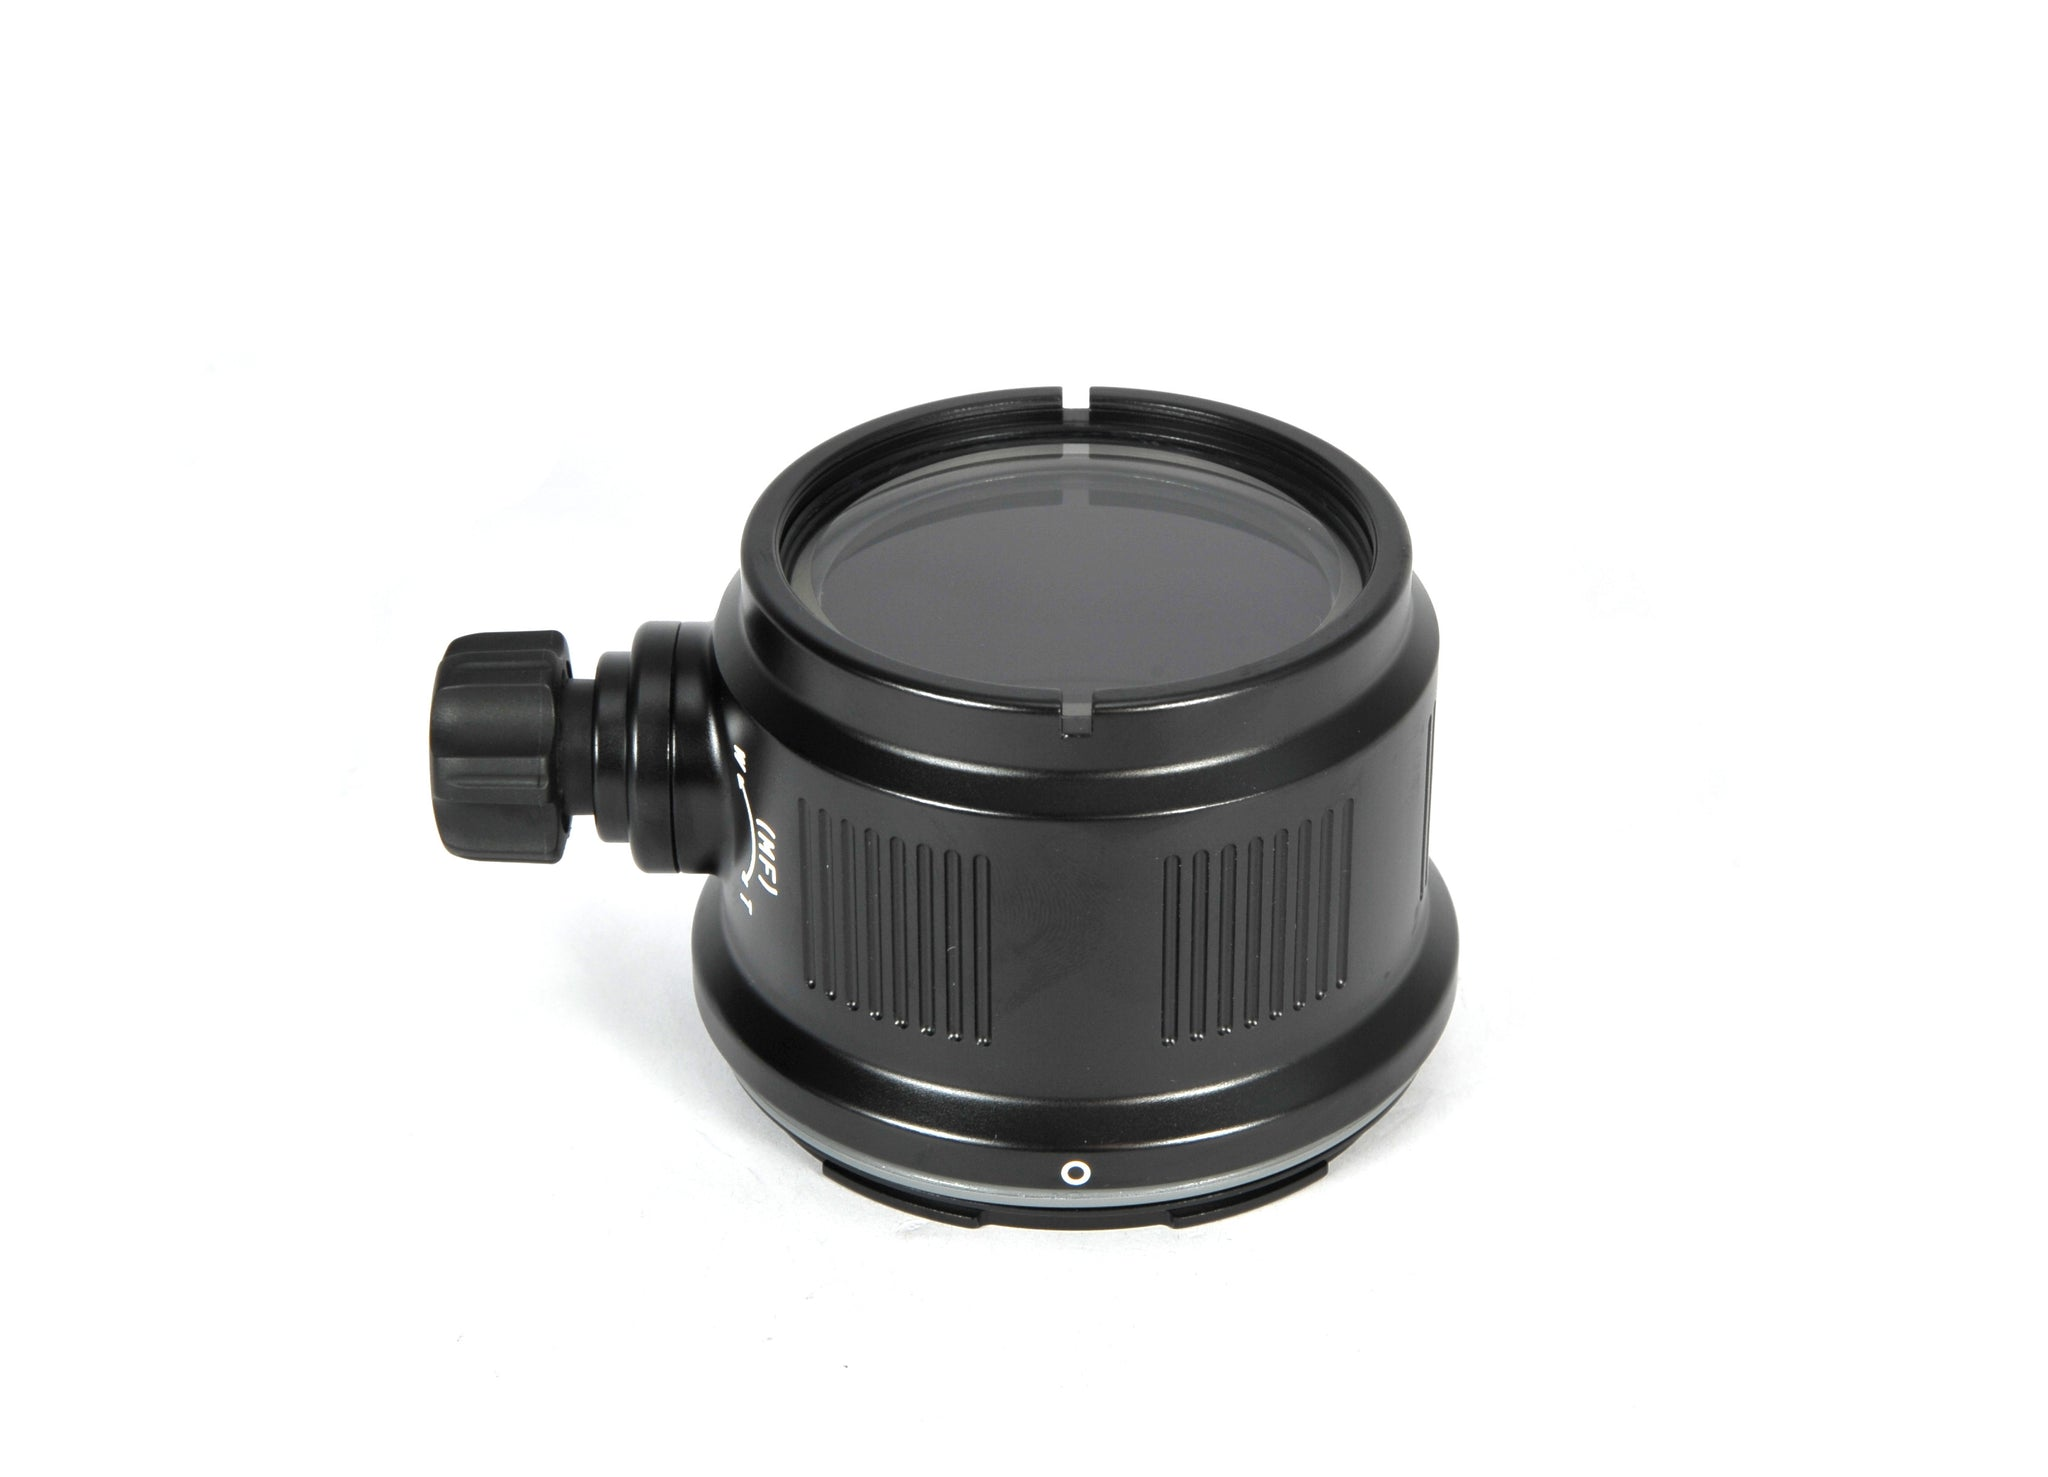 Nauticam N85 Macro Port 45 with Focus/Zoom Knob for Sony E mount 30mm f/3.5 Macro & Sony E mount PZ 16-50mm F3.5-5.6 OSS - 36128